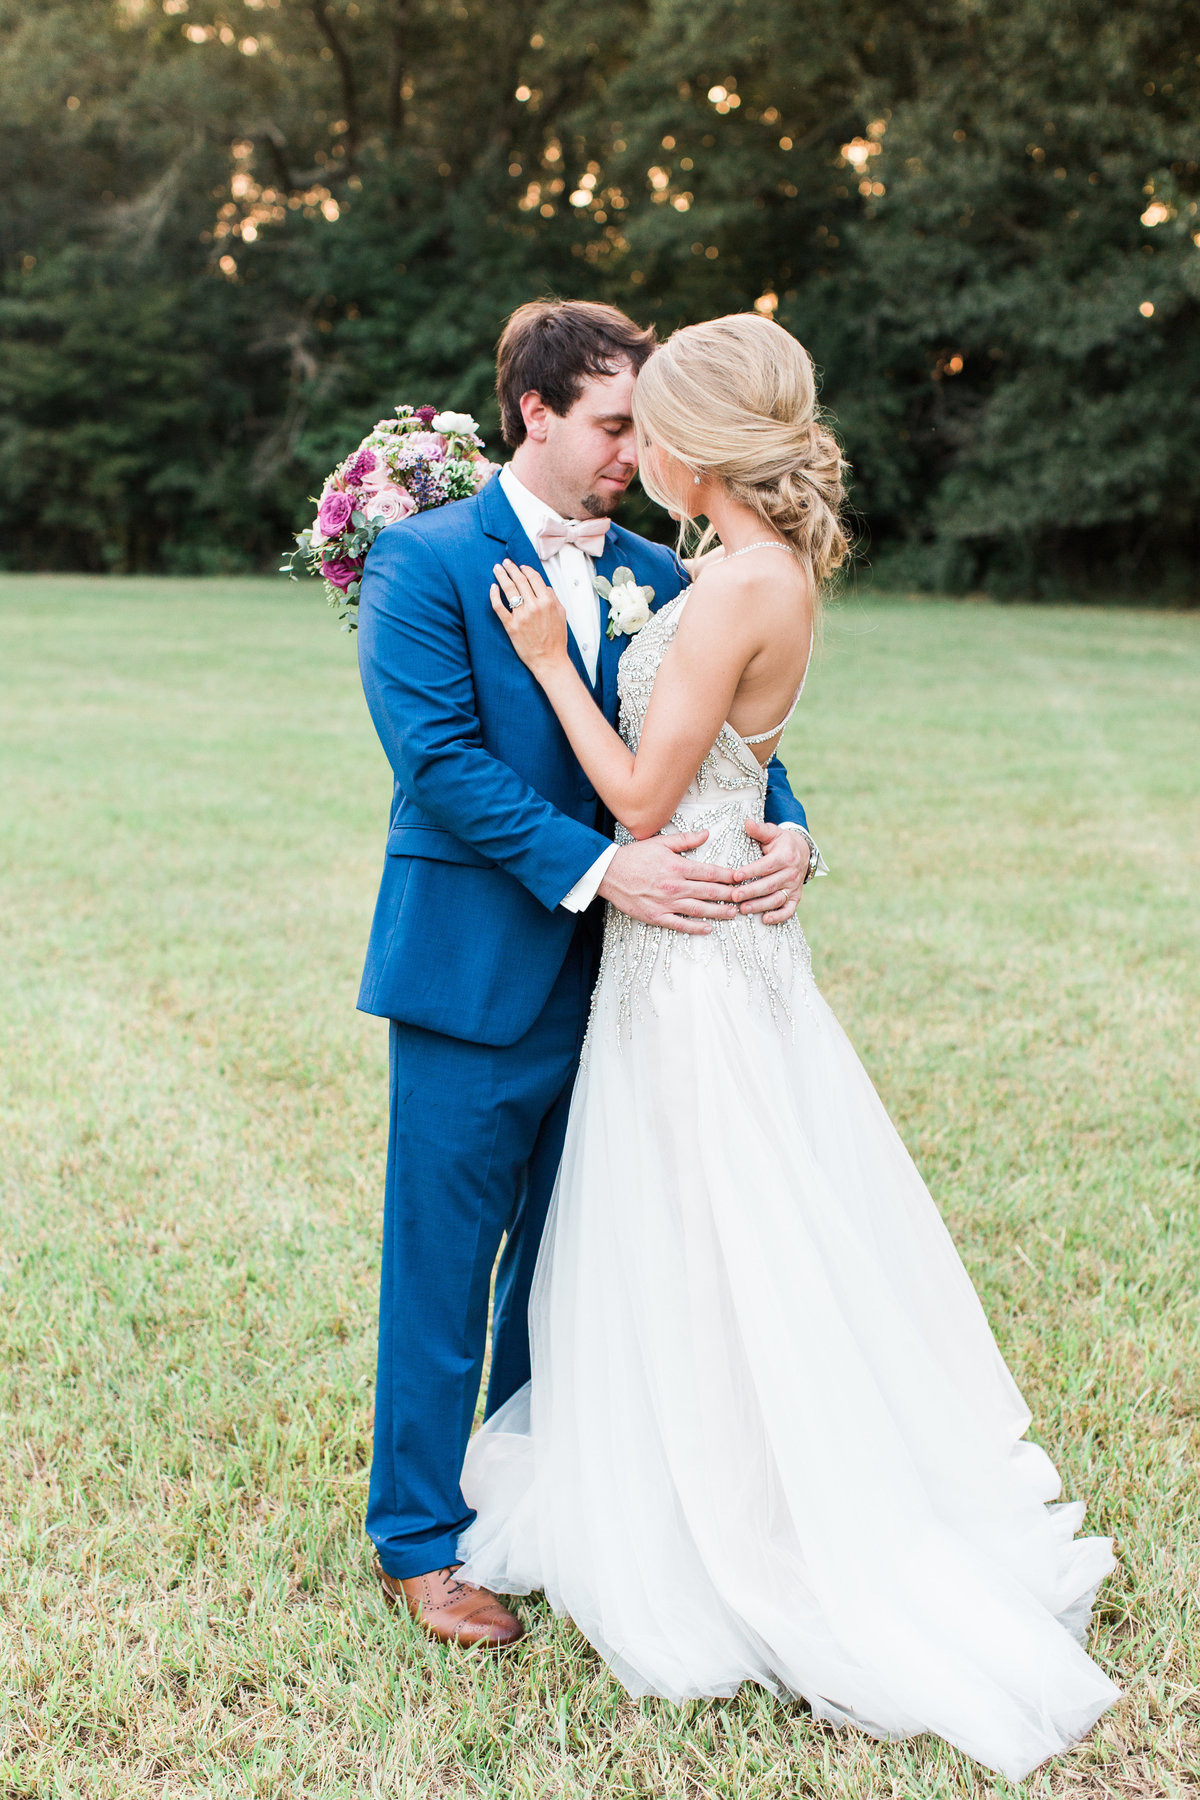 Eden & Will Wedding_Lindsay Ott Photography_Mississippi Wedding Photographer114